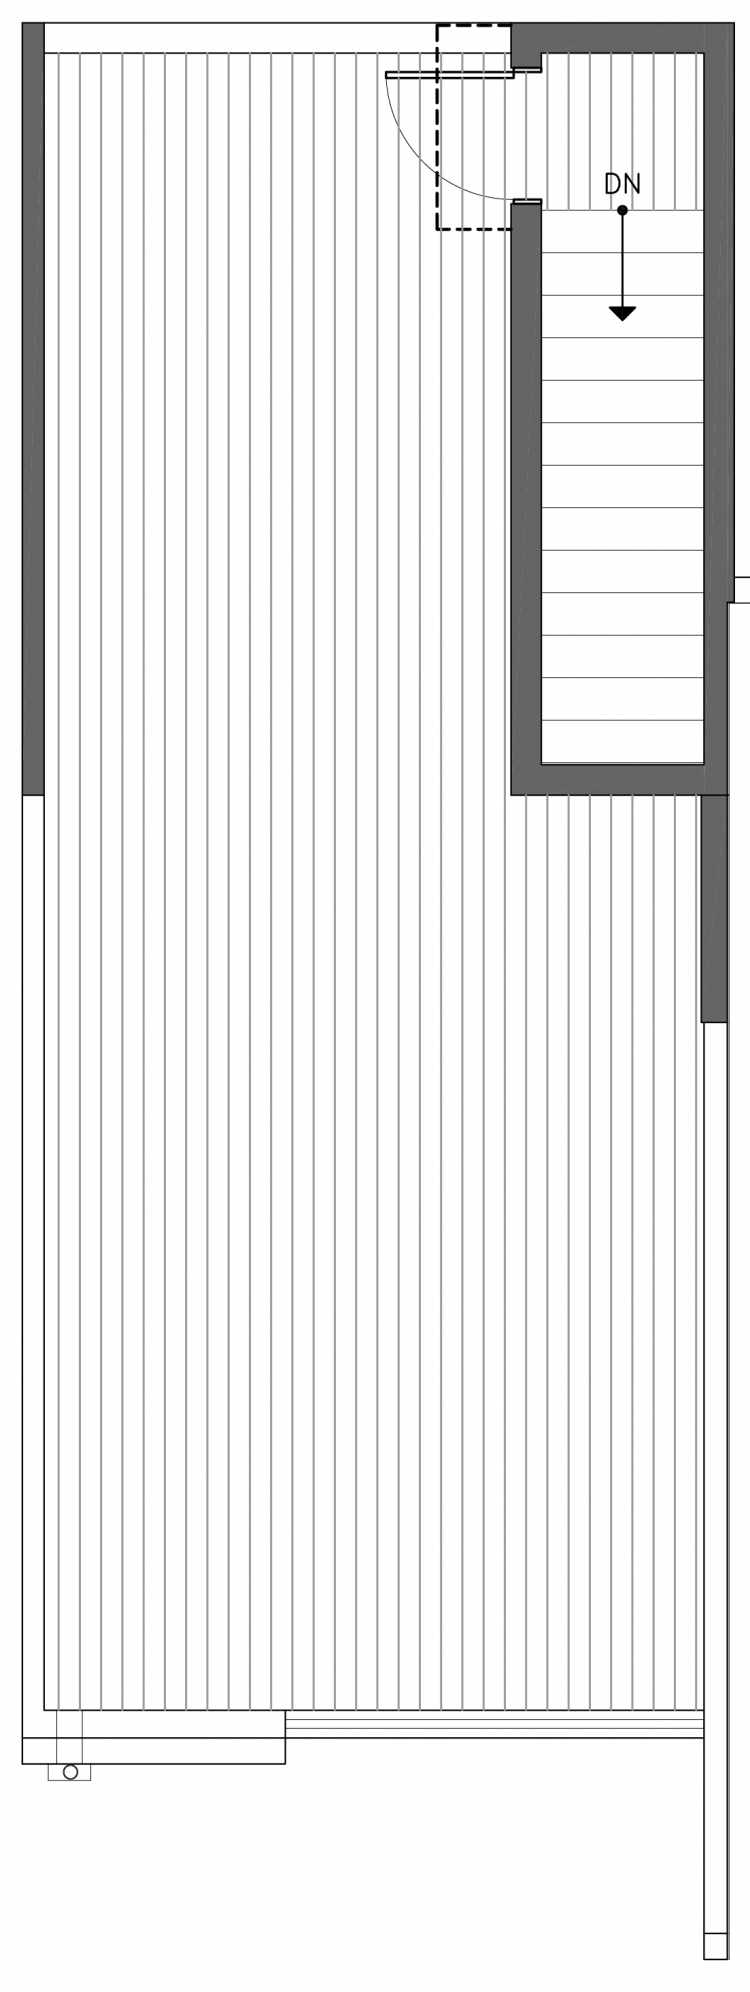 Roof Deck Floor Plan of 3236B 14th Ave W, One of the Harloe Townhomes in North Queen Anne by Isola Homes